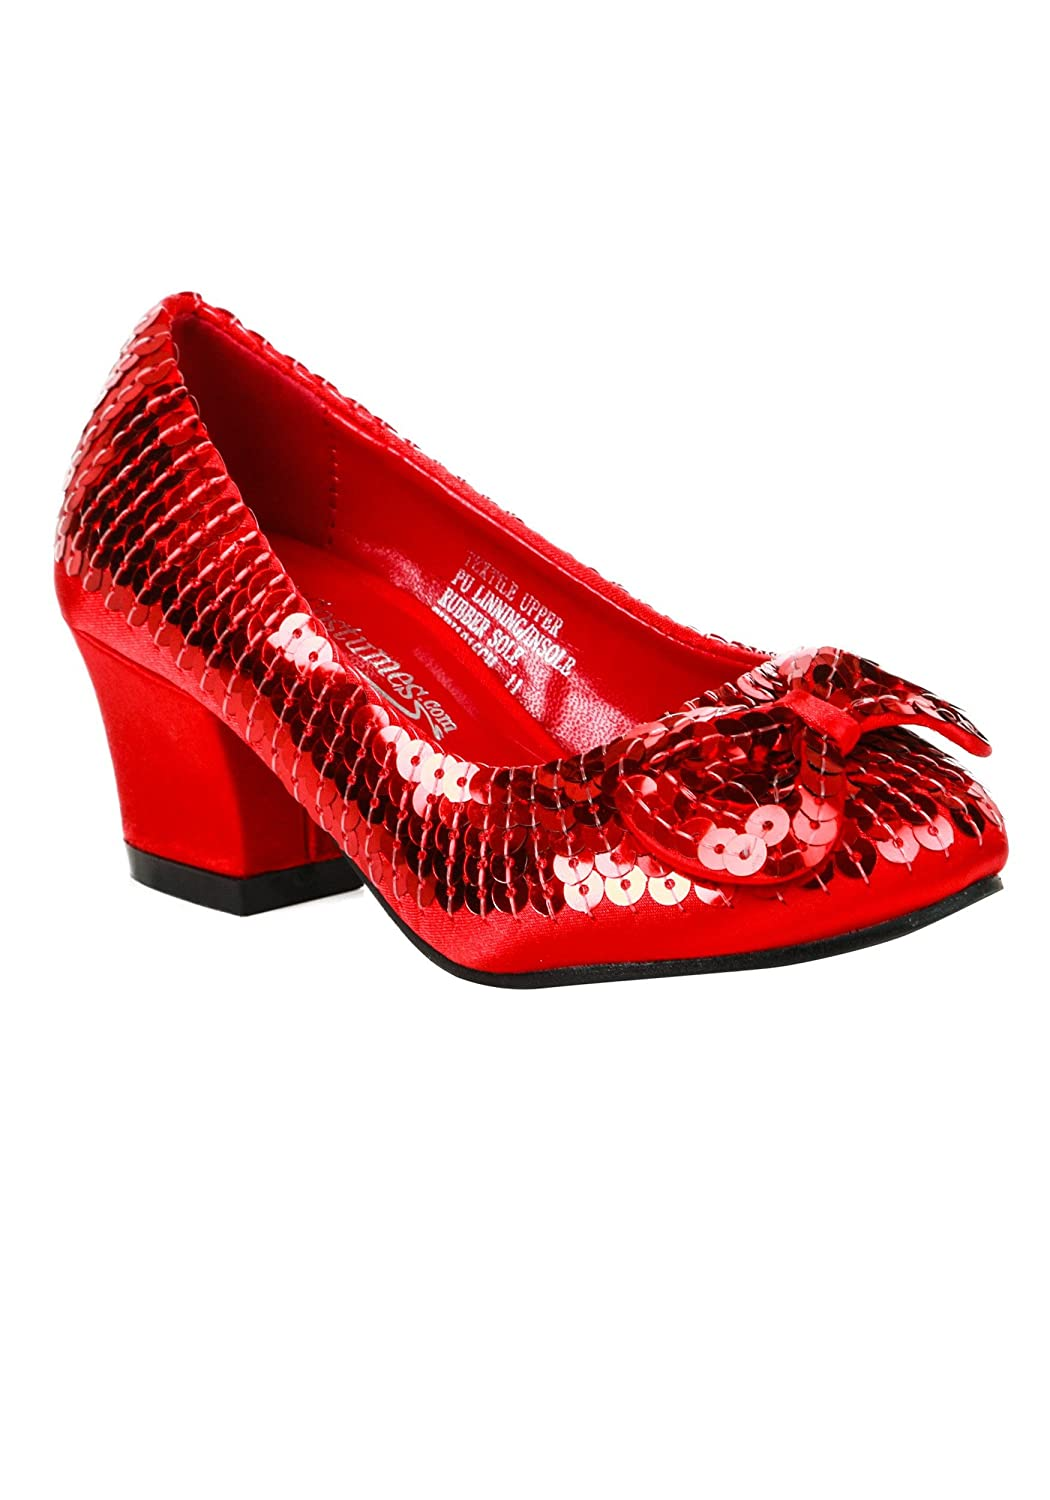 Fun Costumes Child Red Sequin Shoes